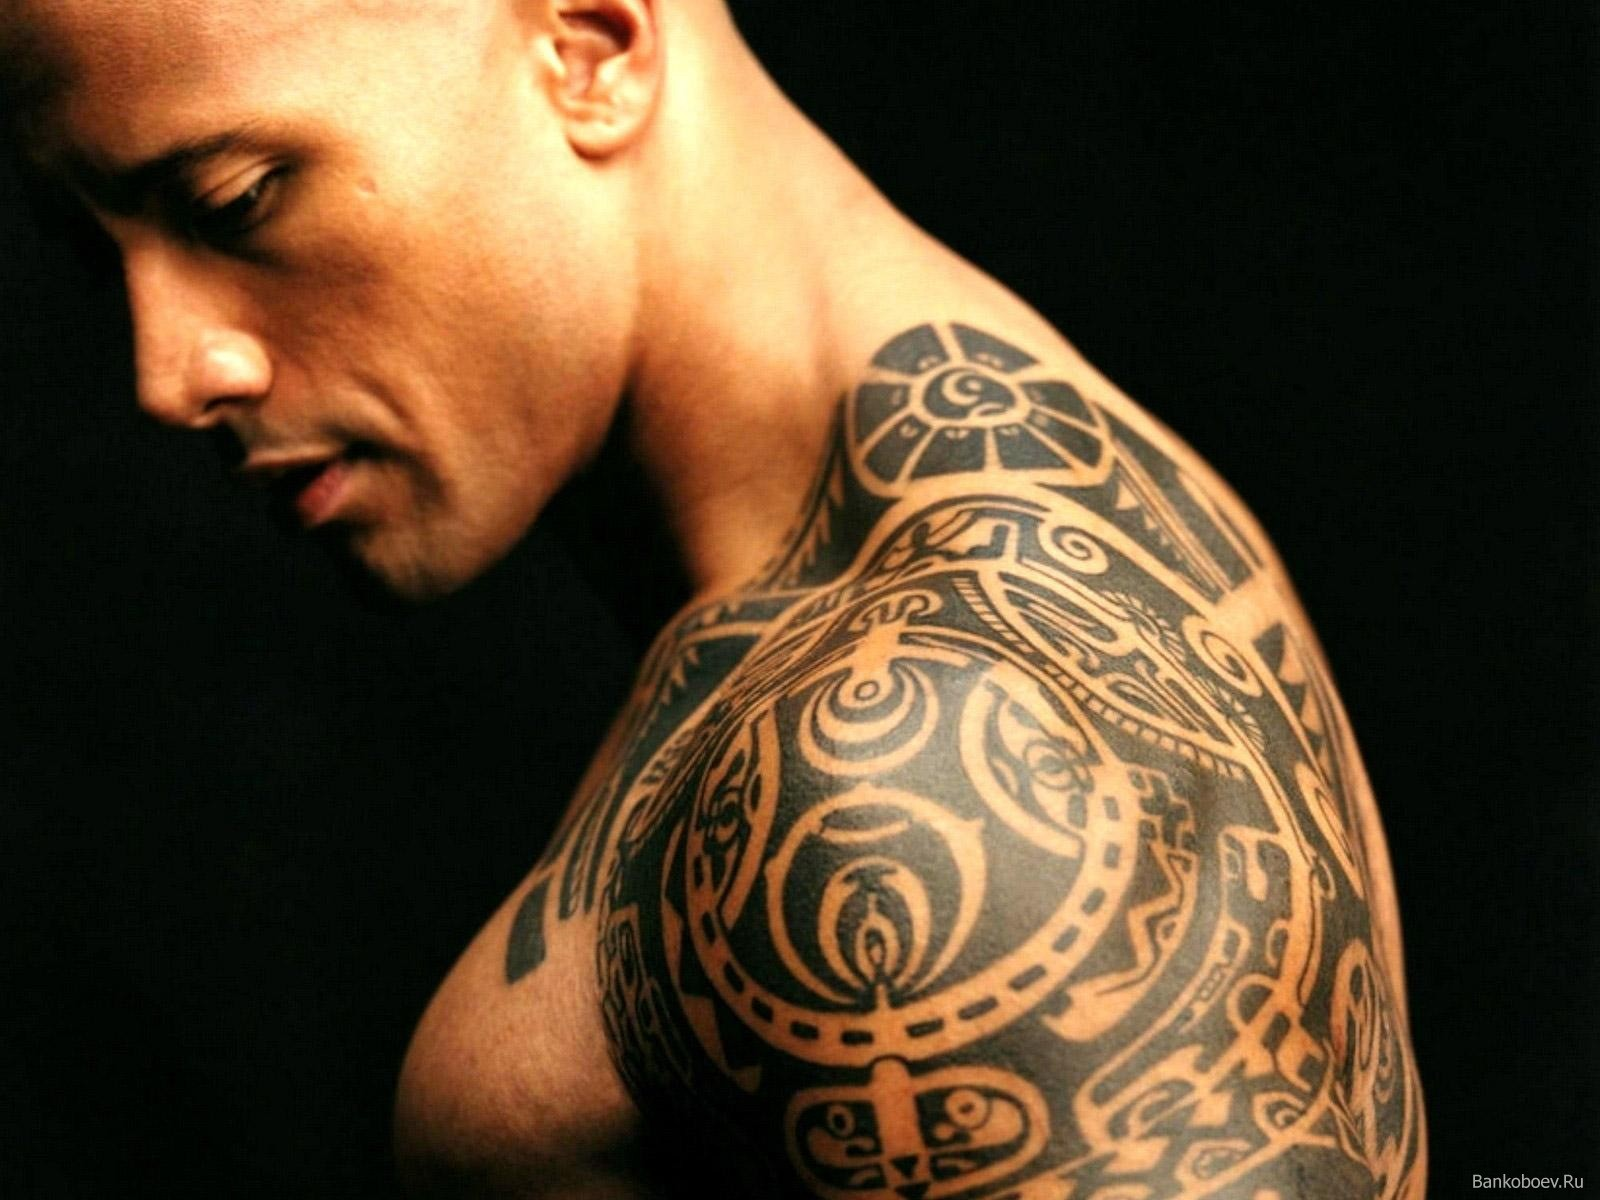 men tattoos Jan 09 2013 171335 Picture Gallery 1600x1200